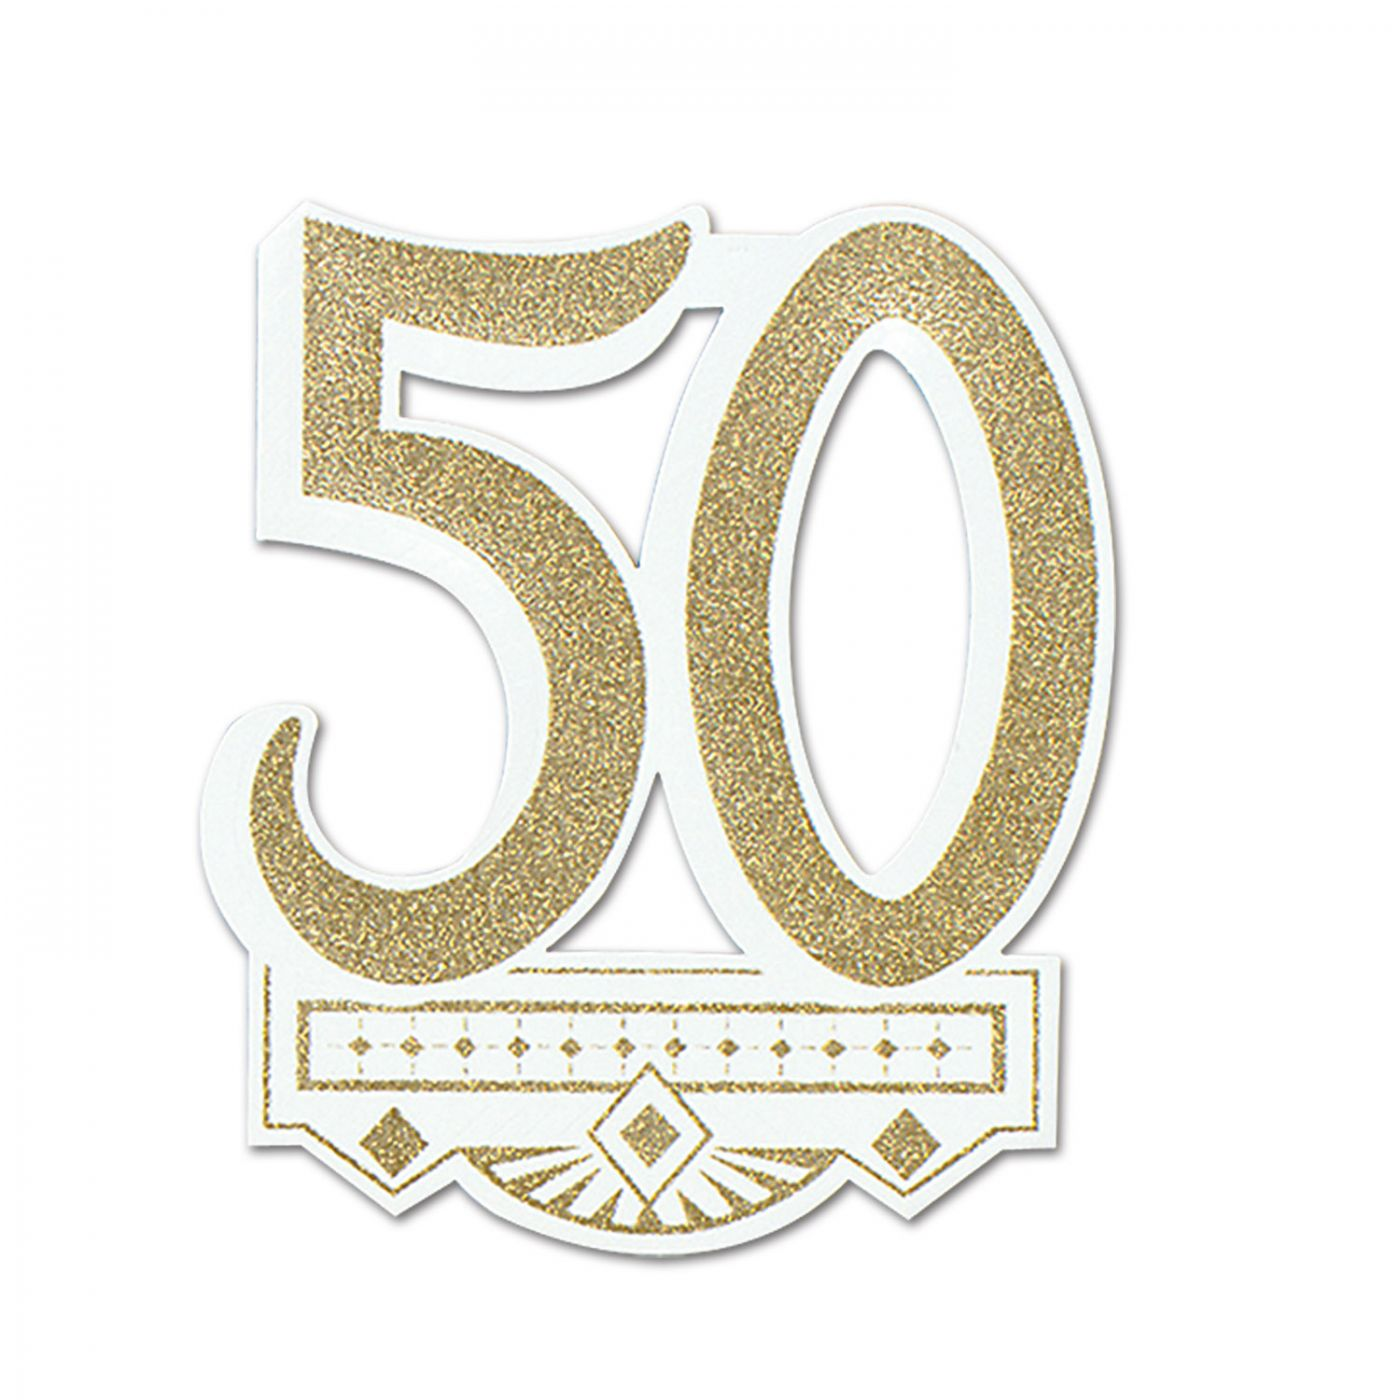 50th Anniversary Crest image